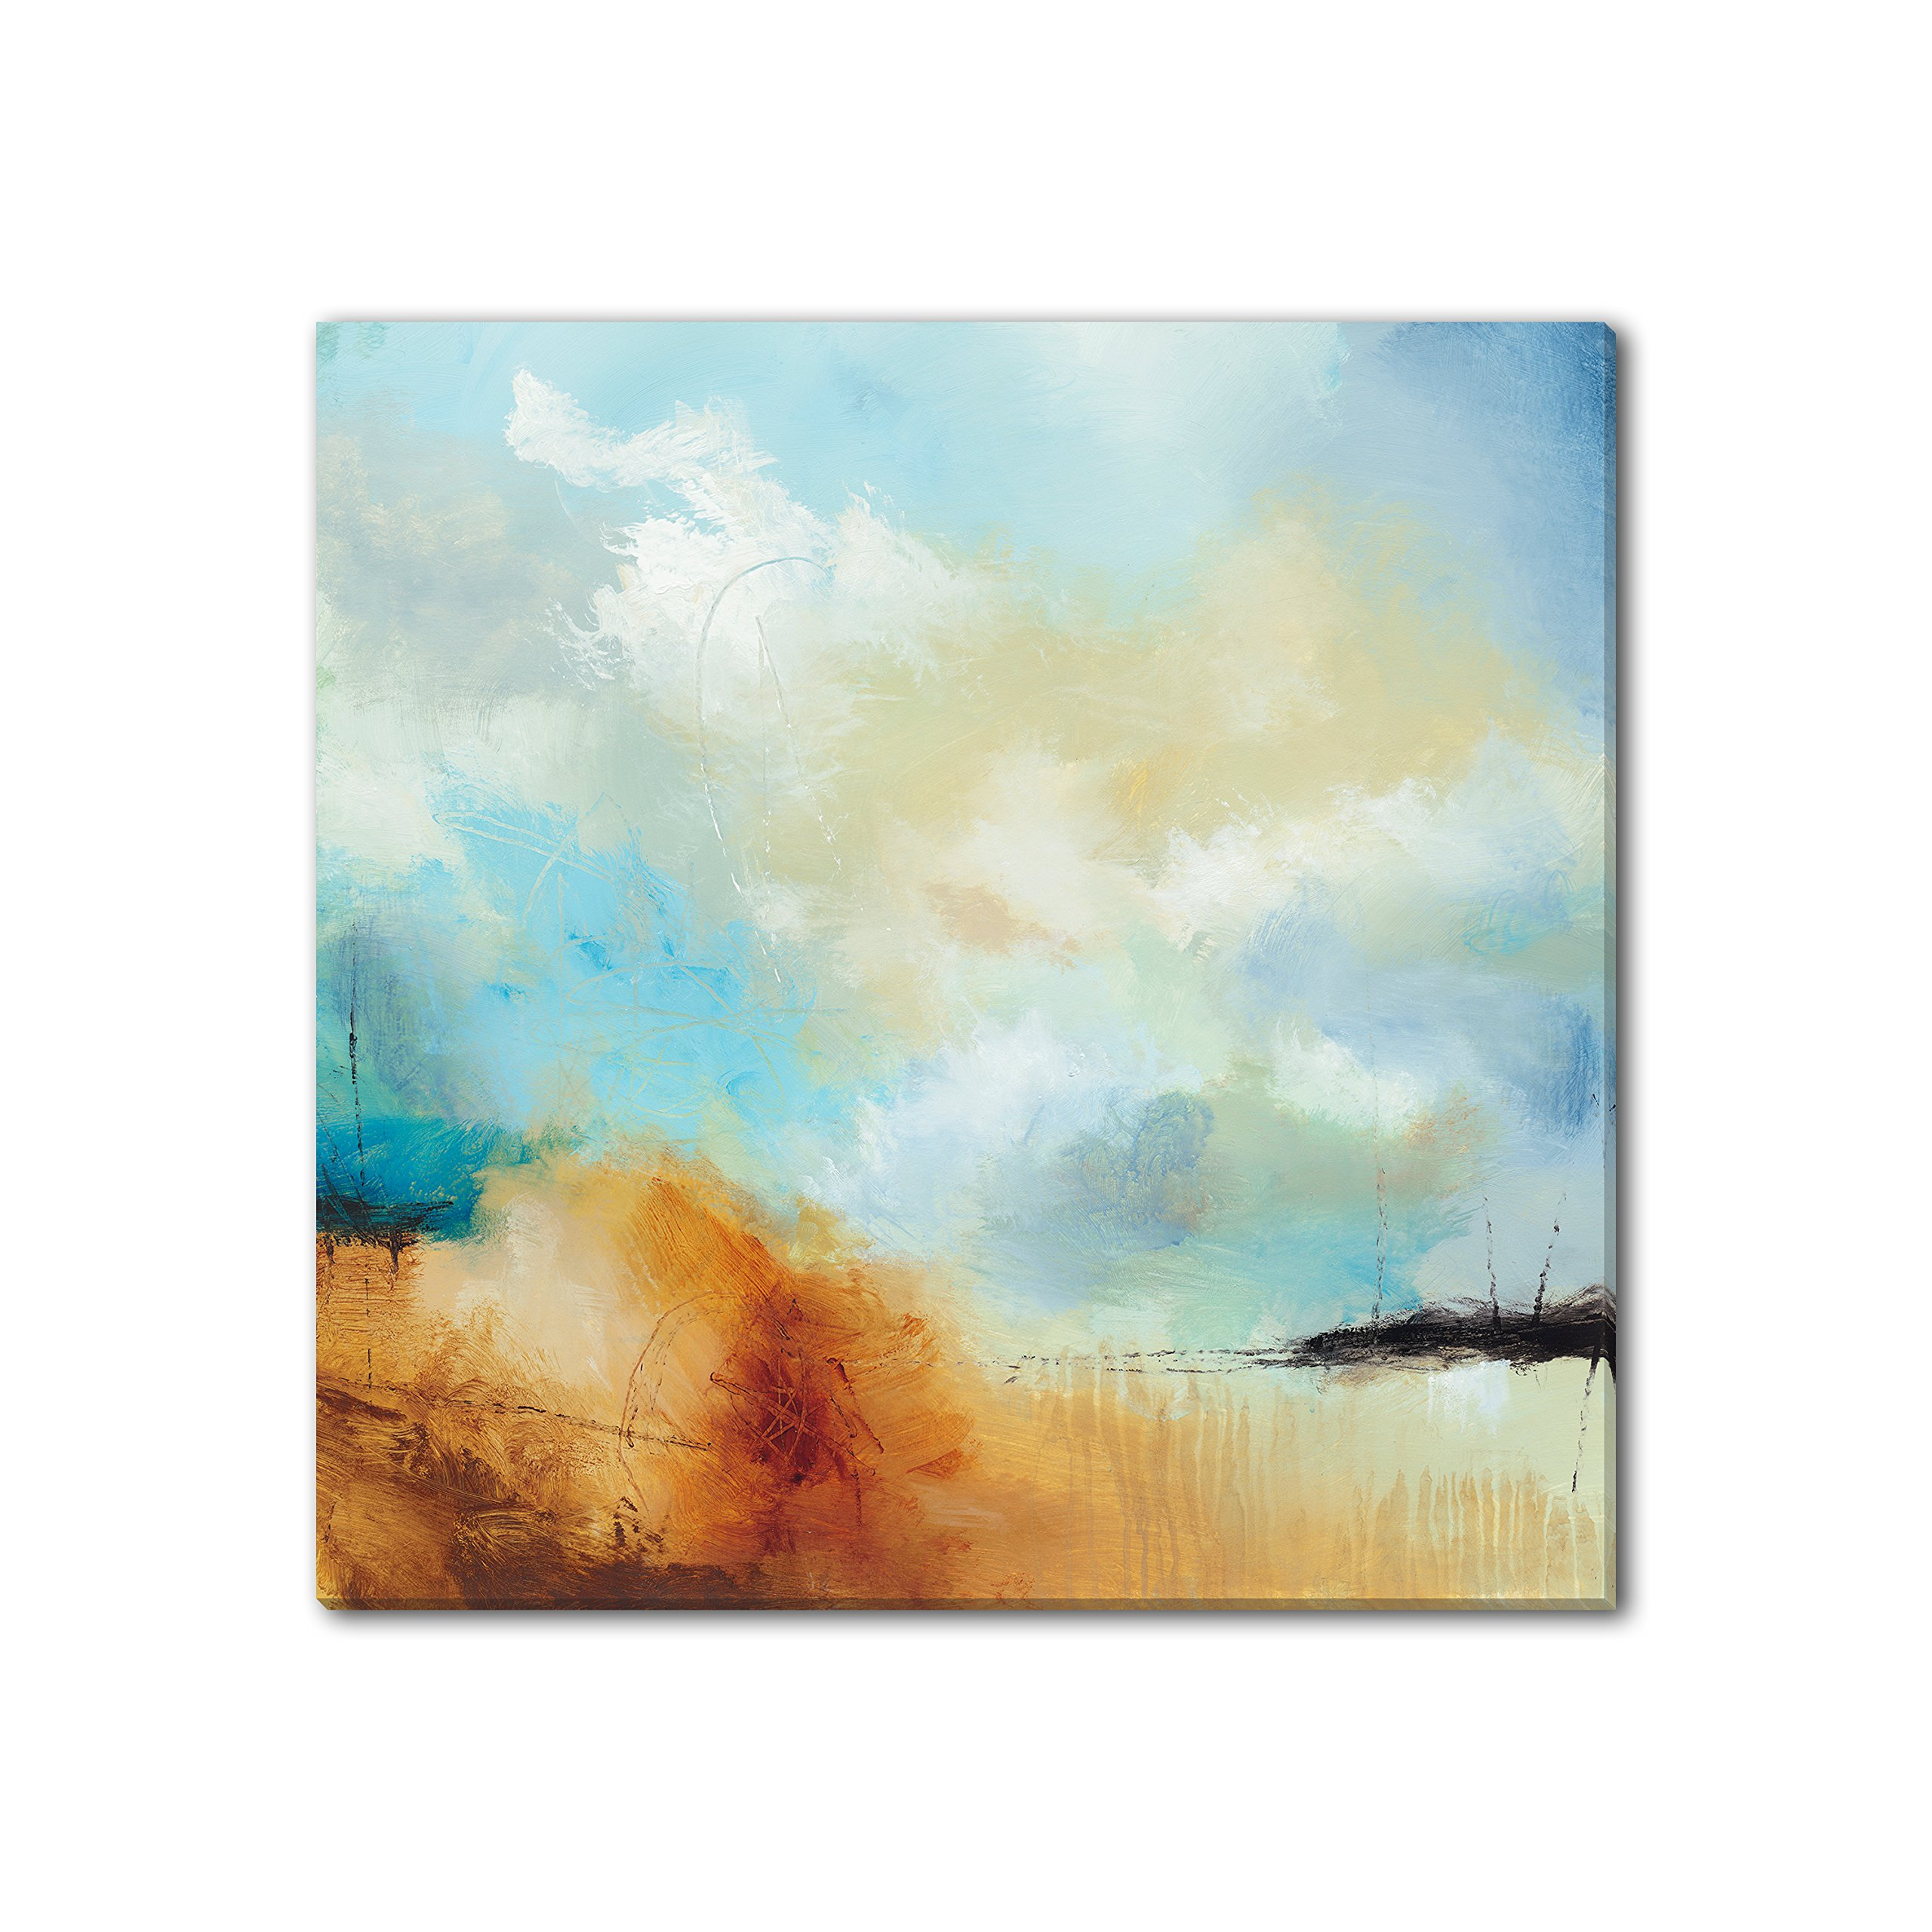 Gallery Direct 'Desert Skies I' Canvas Gallery Wrap by Sean Jacobs', 40 by 40-Inch